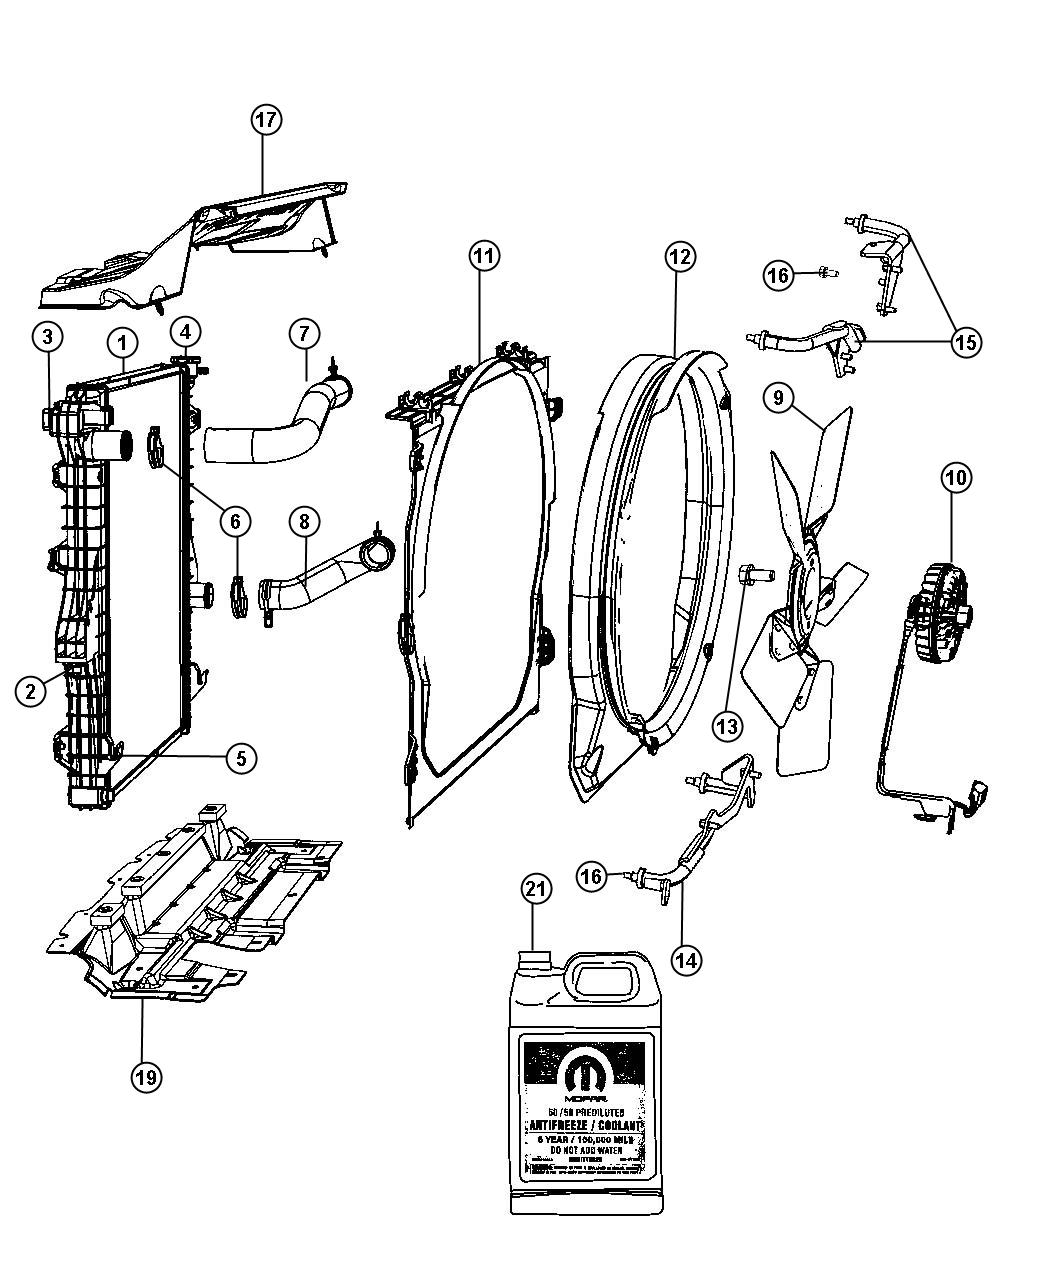 tags: #volvo d13 fuel system#volvo truck engine diagram#volvo truck wiring  schematic#2002 volvo truck wiring diagrams#volvo truck wire diagram  hazard#j1939